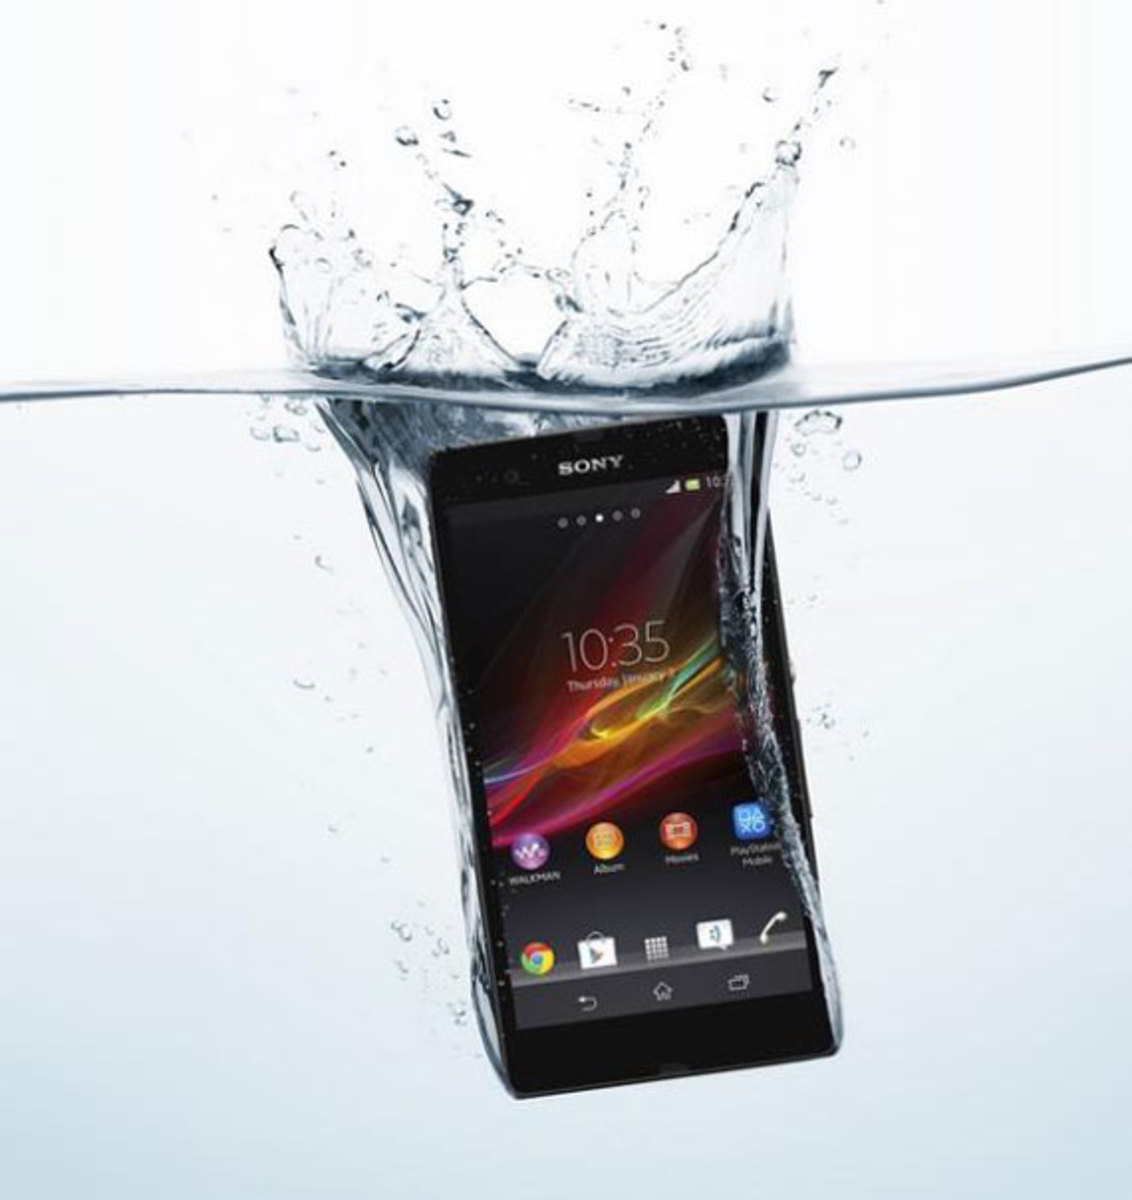 sony-xperia-z-water-resistant-android-smartphone-02